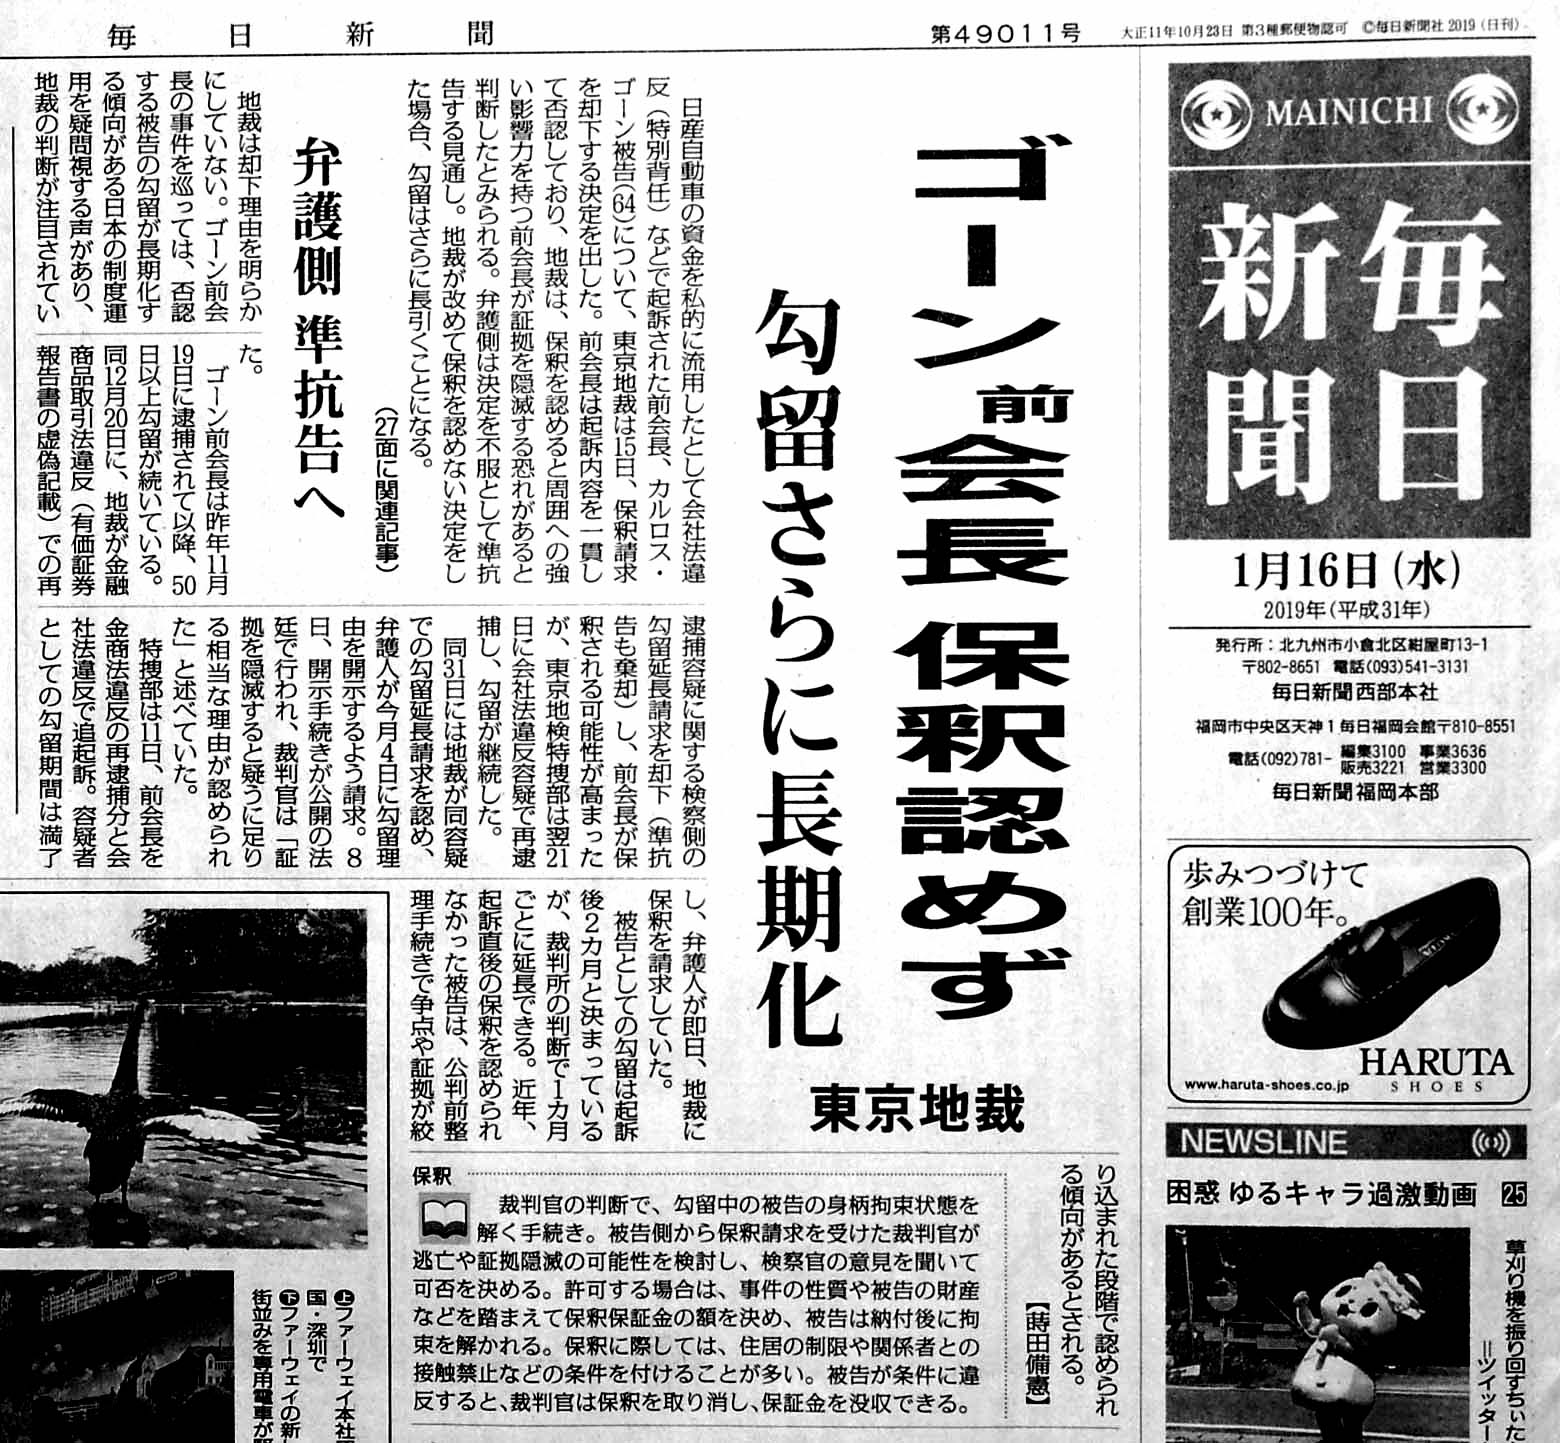 190116mainichi-ghosn.jpg